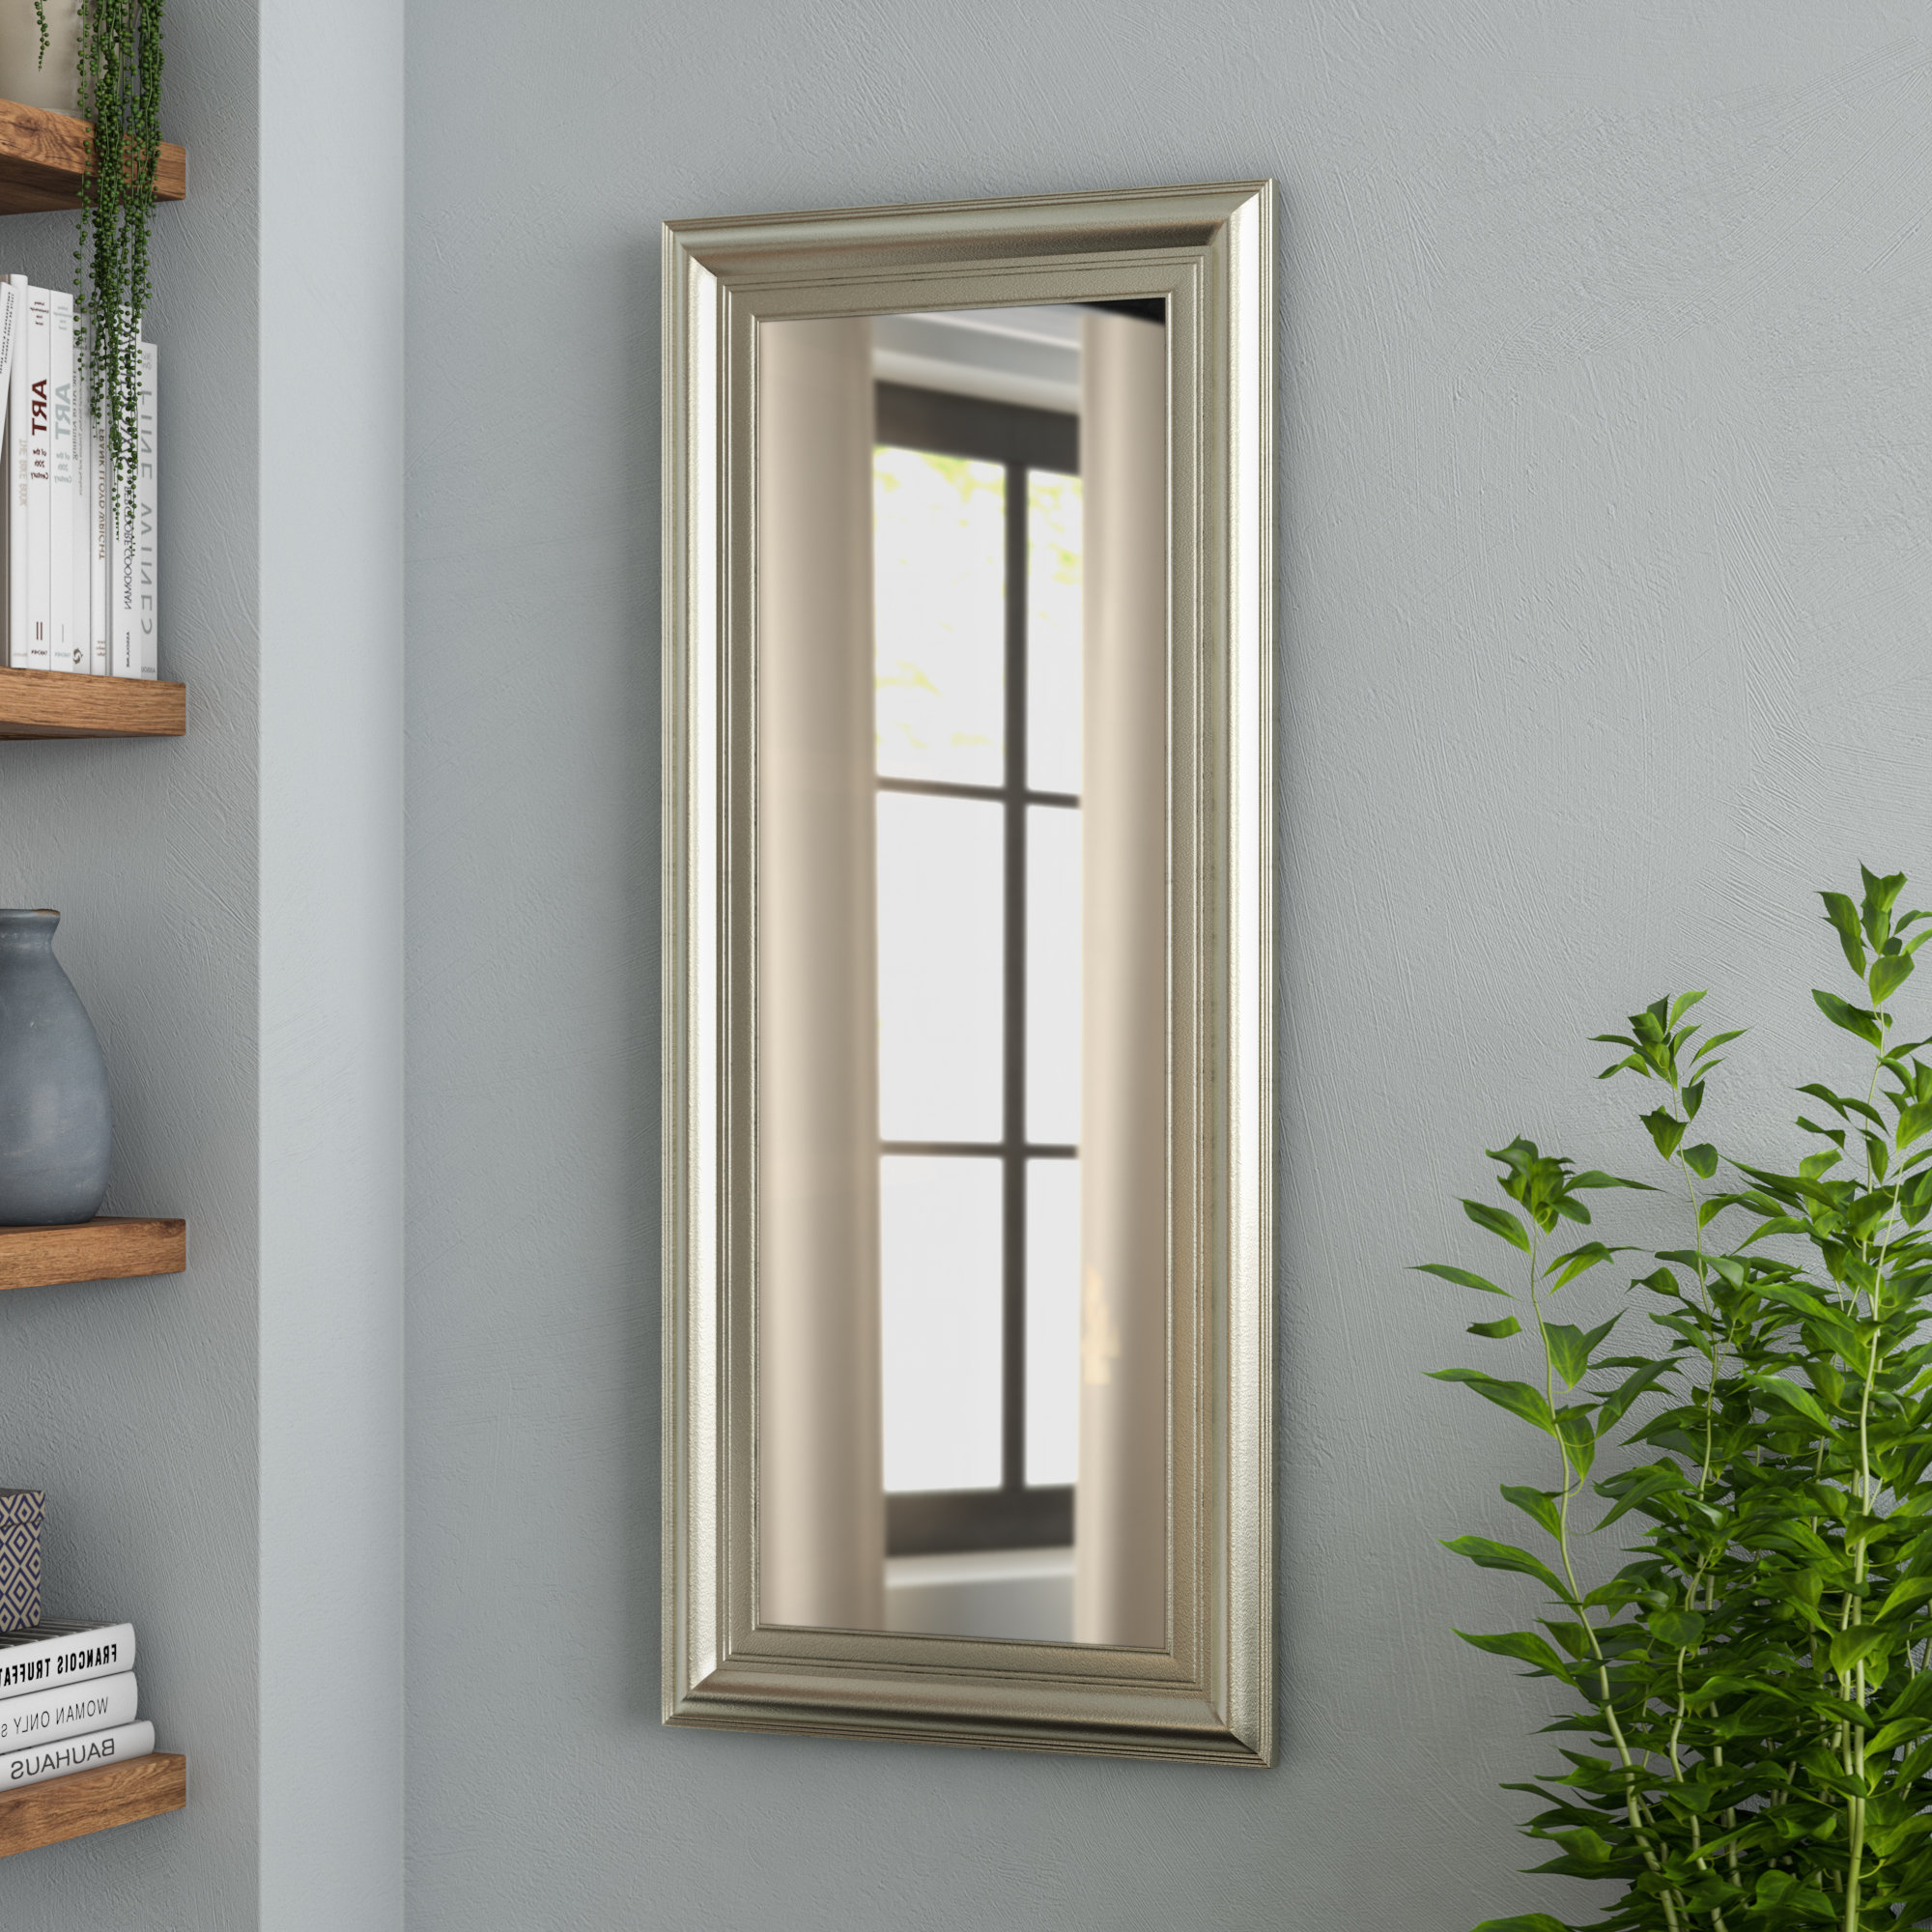 Framed Wall Mirrors For Well Known Dedrick Decorative Framed Modern And Contemporary Wall Mirror (View 11 of 20)